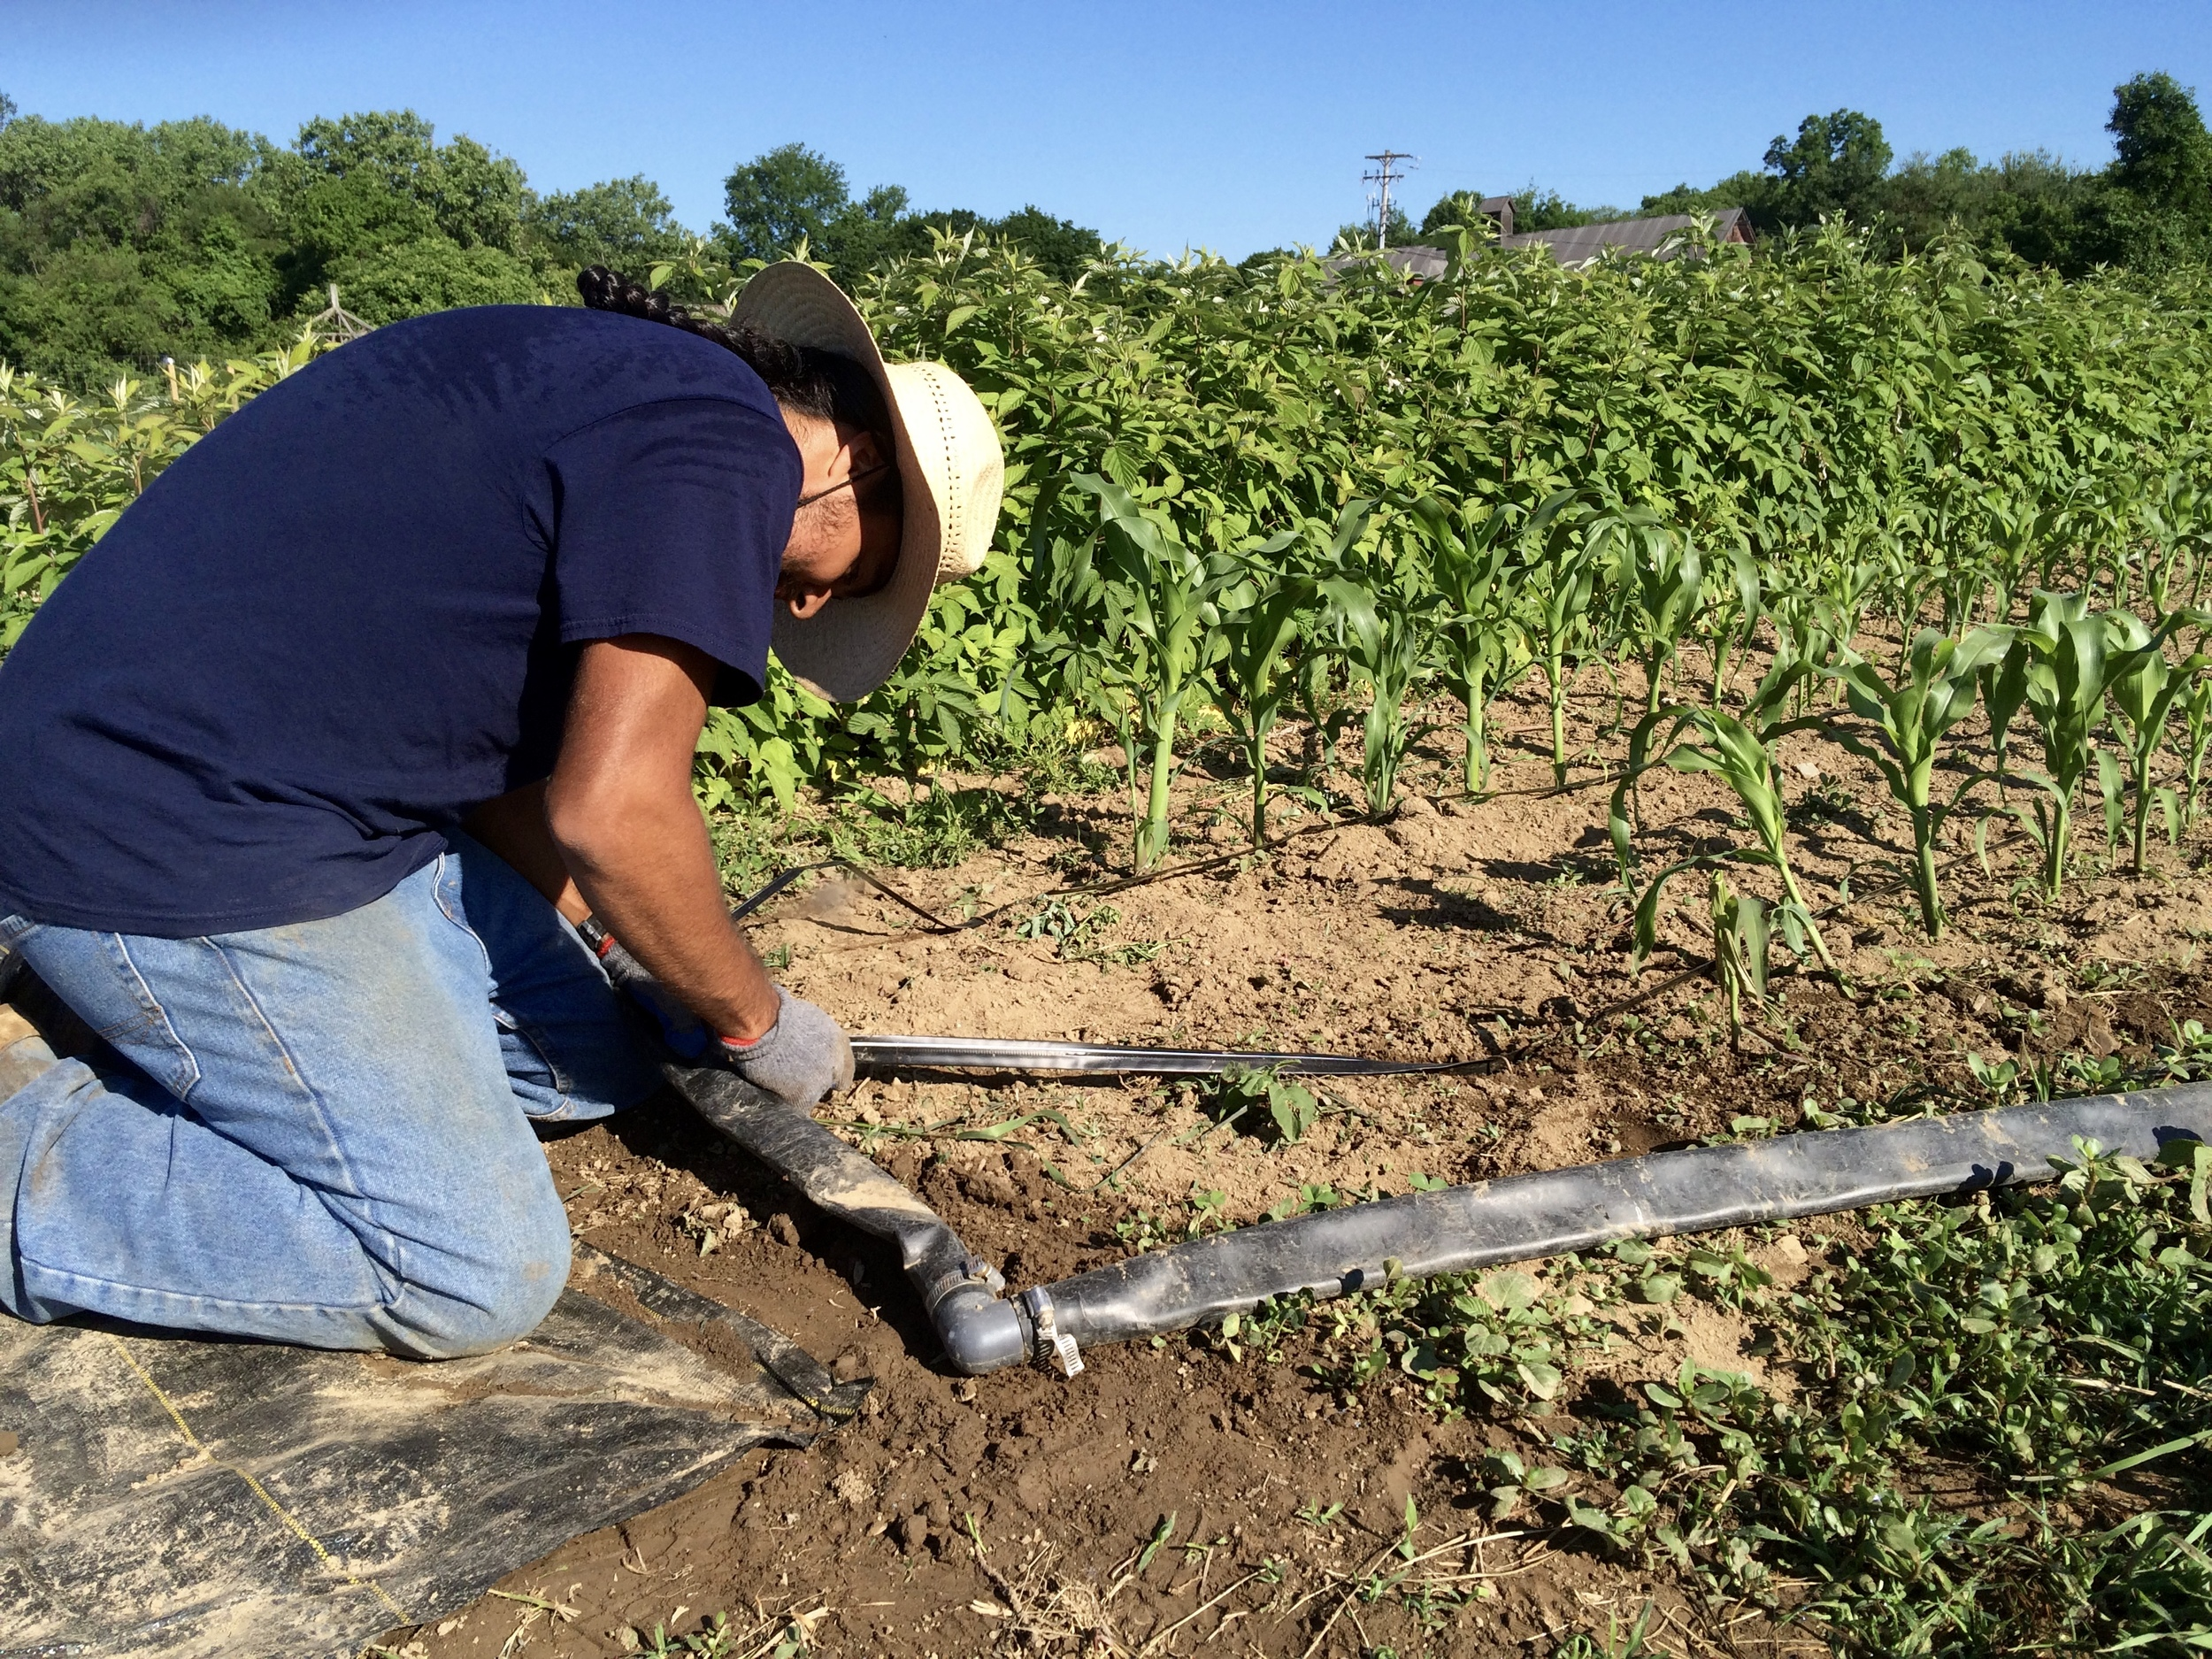 German is connecting a drip line to the header, which supplies water.